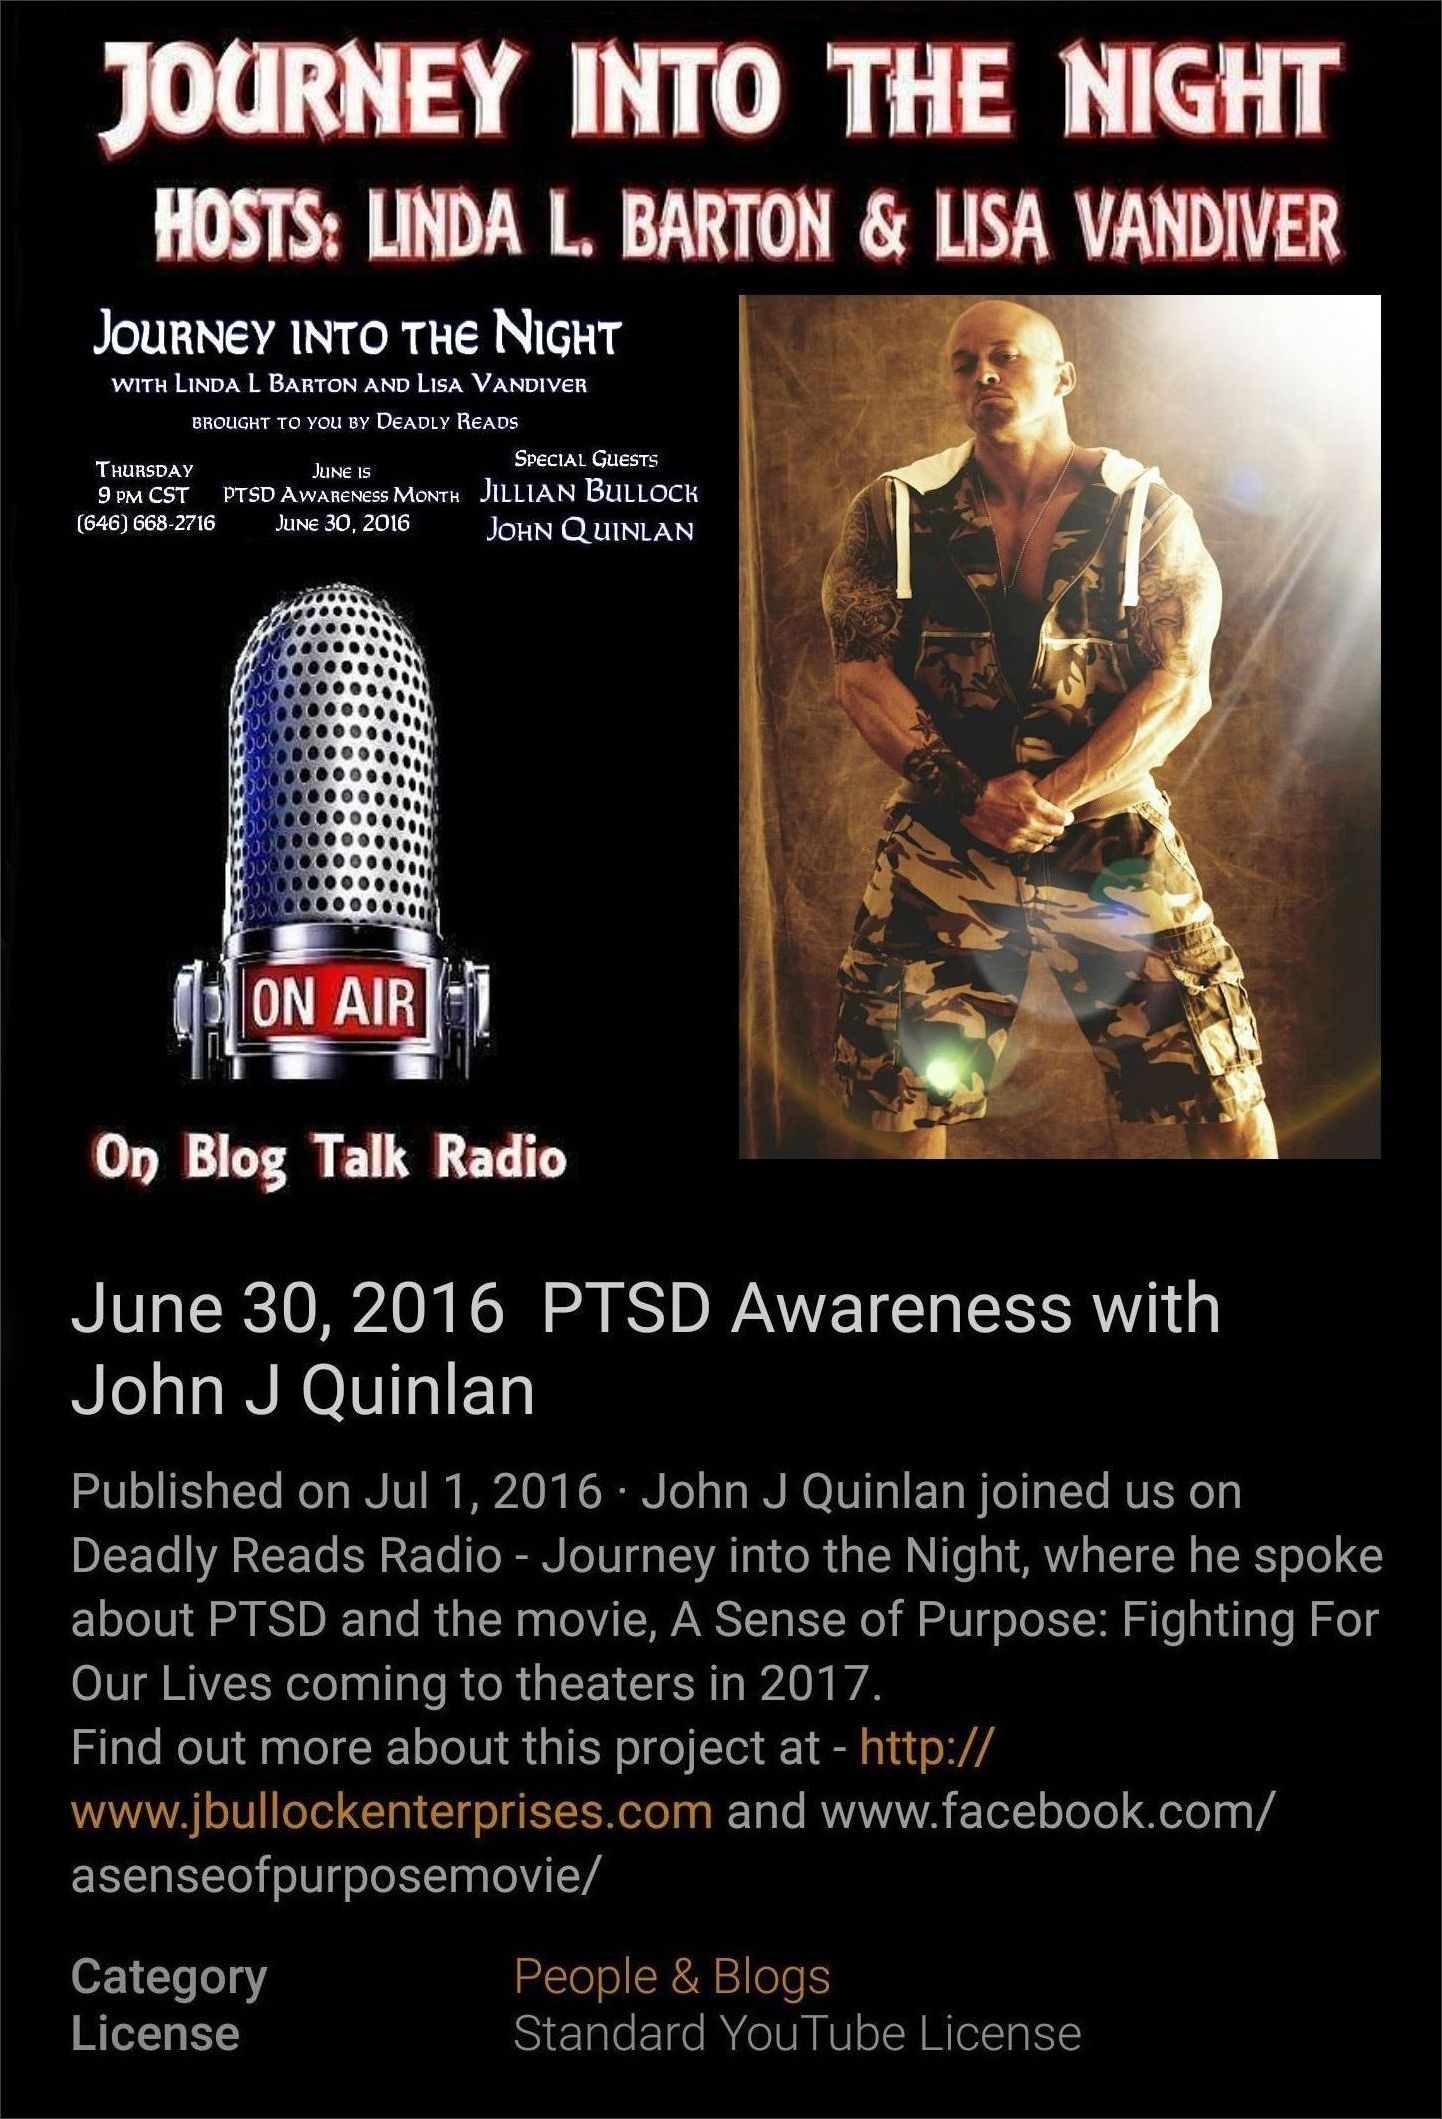 Actor John Joseph Quinlan on Deadly Reads Radio via YouTube Interview 6-30-2016 #JohnQuinlan